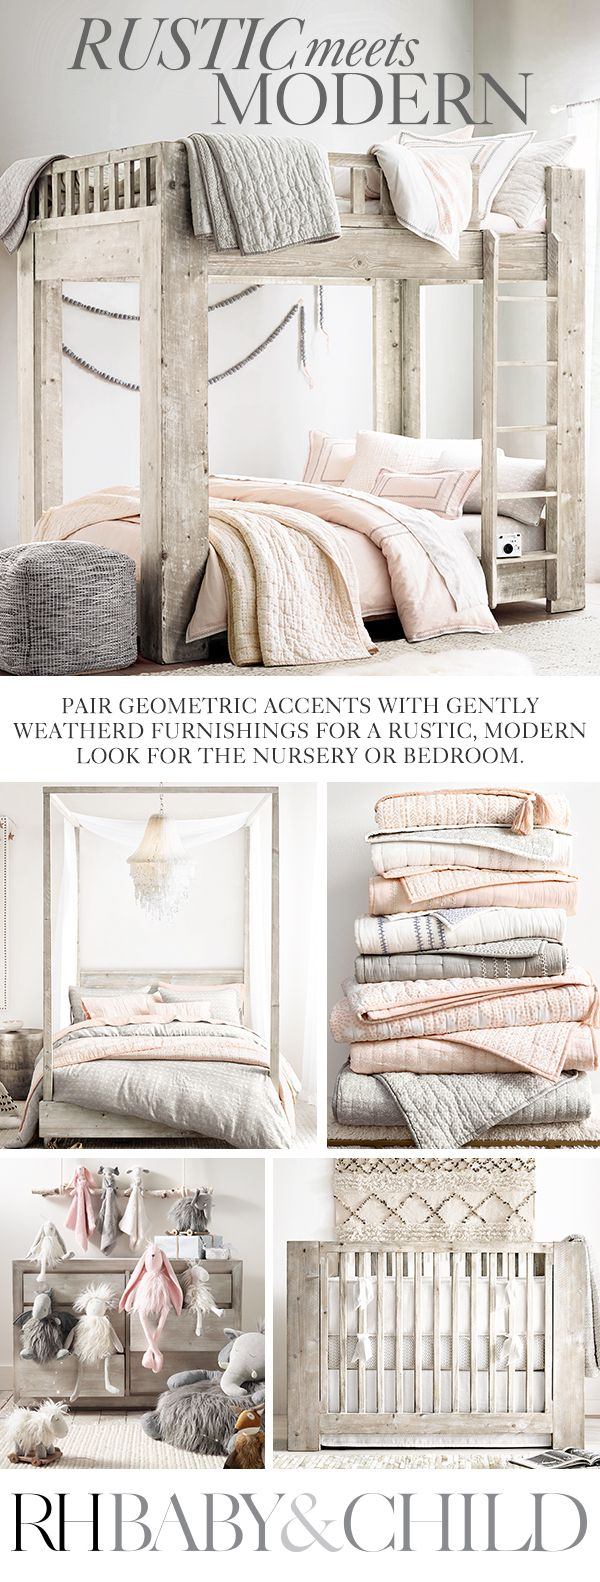 Natural materials, organic textures and muted tones add a relaxed note to clean-lined, modern designs. Shop this style at RH Baby & Child.